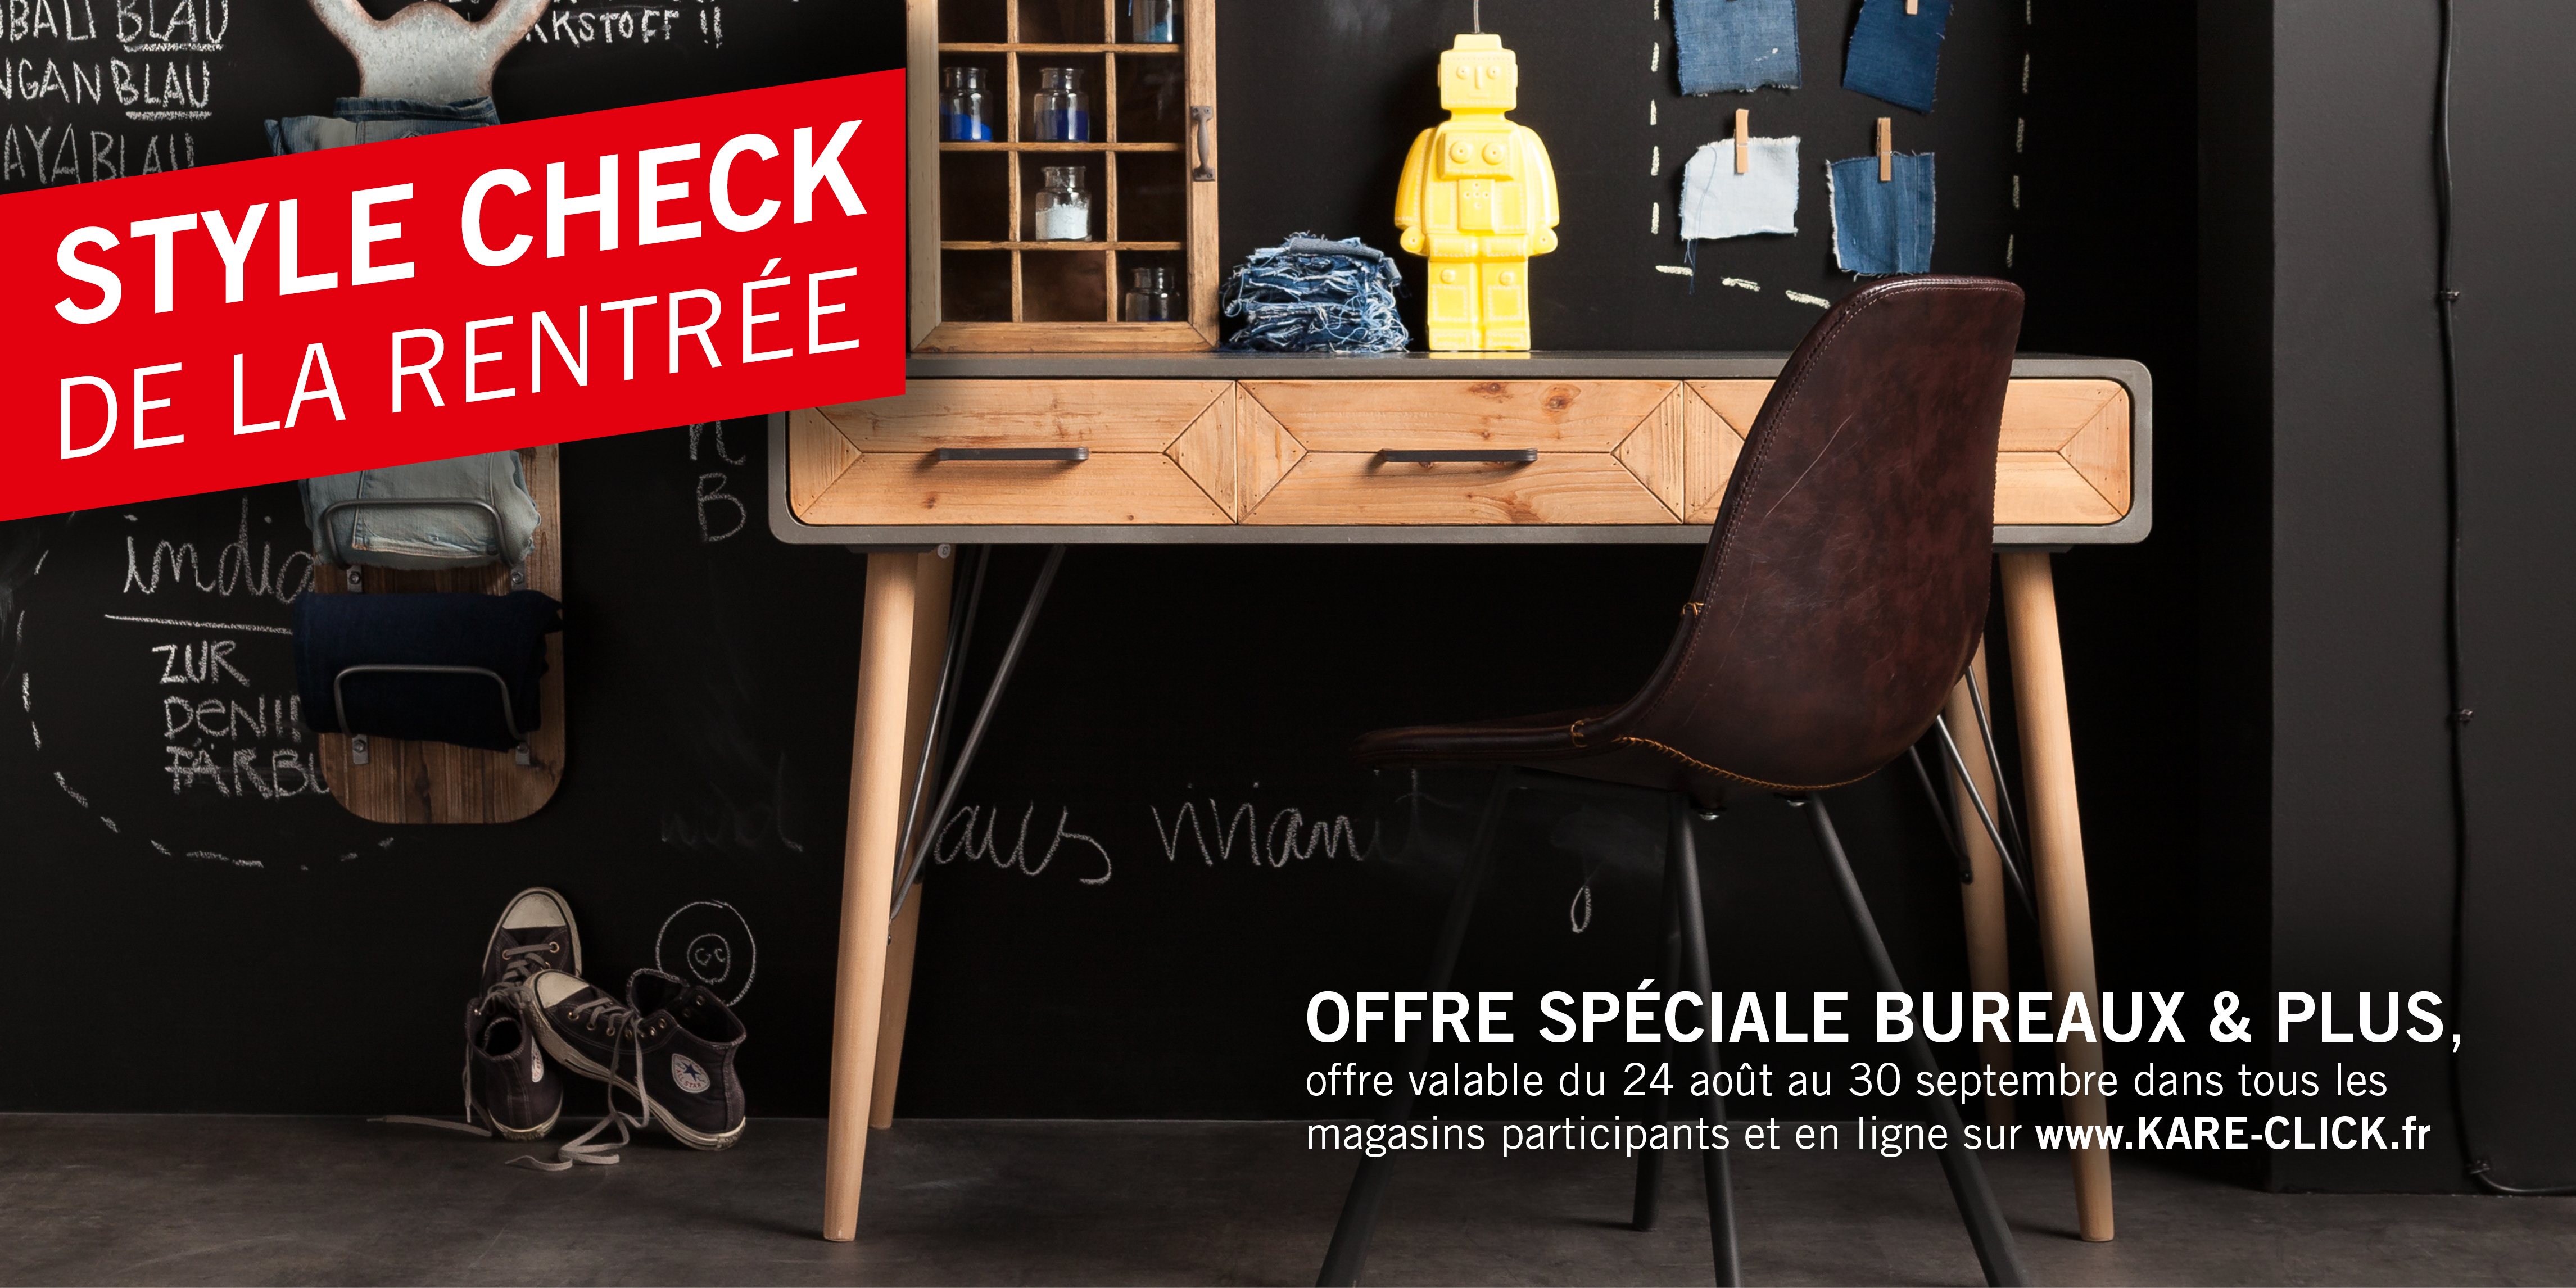 magasin ambiance et style. great velound gear bicycle culture and